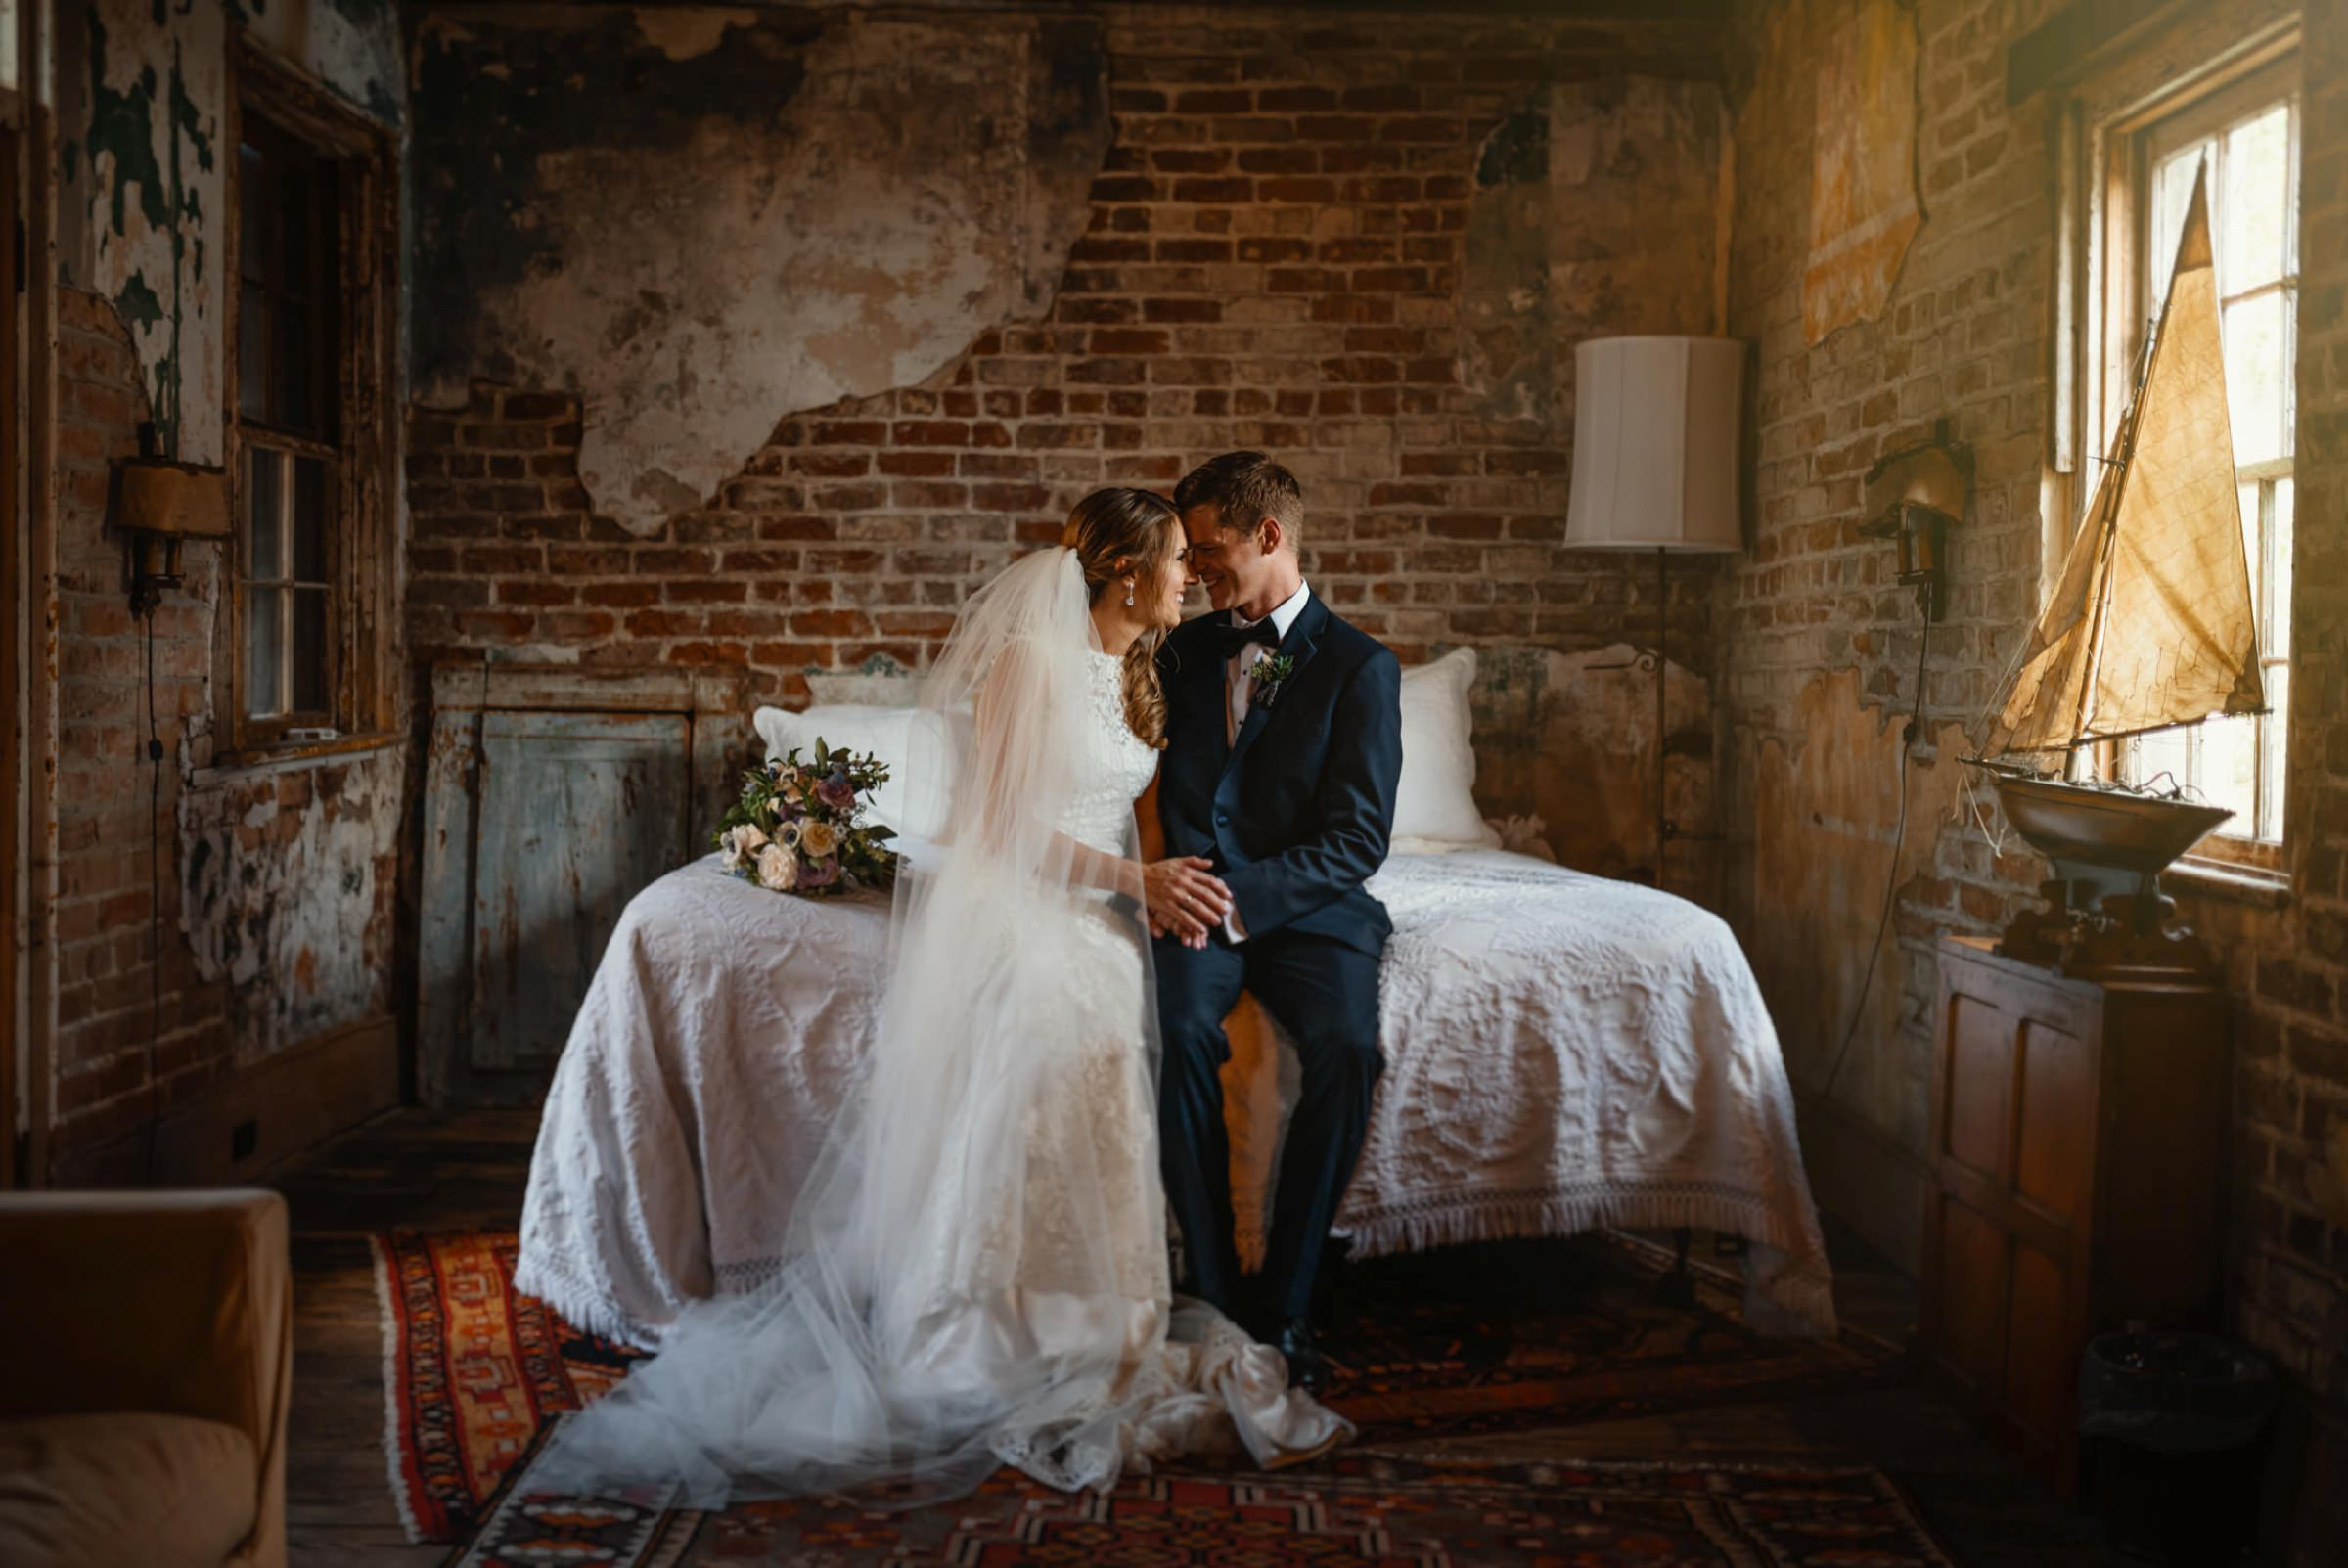 bride and groom taking a moment together after ceremony-new orleans-austin-houston- photo by Dark Roux